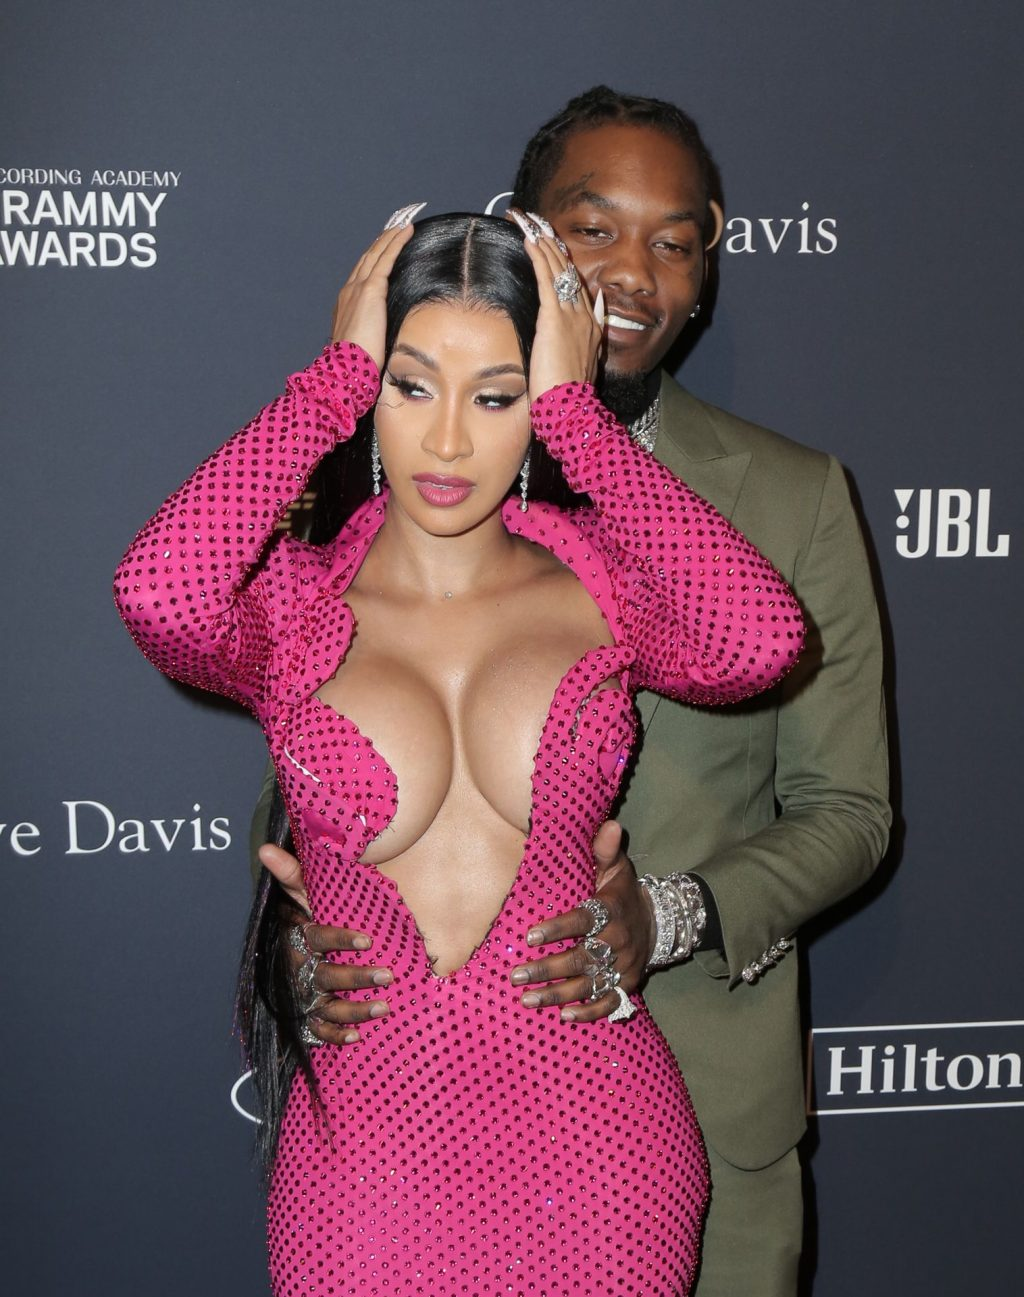 Offset Covers Cardi B's Boobs to Avoid Wardrobe Malfunction at Clive Davis Pre-Grammy Party (114 Photos)